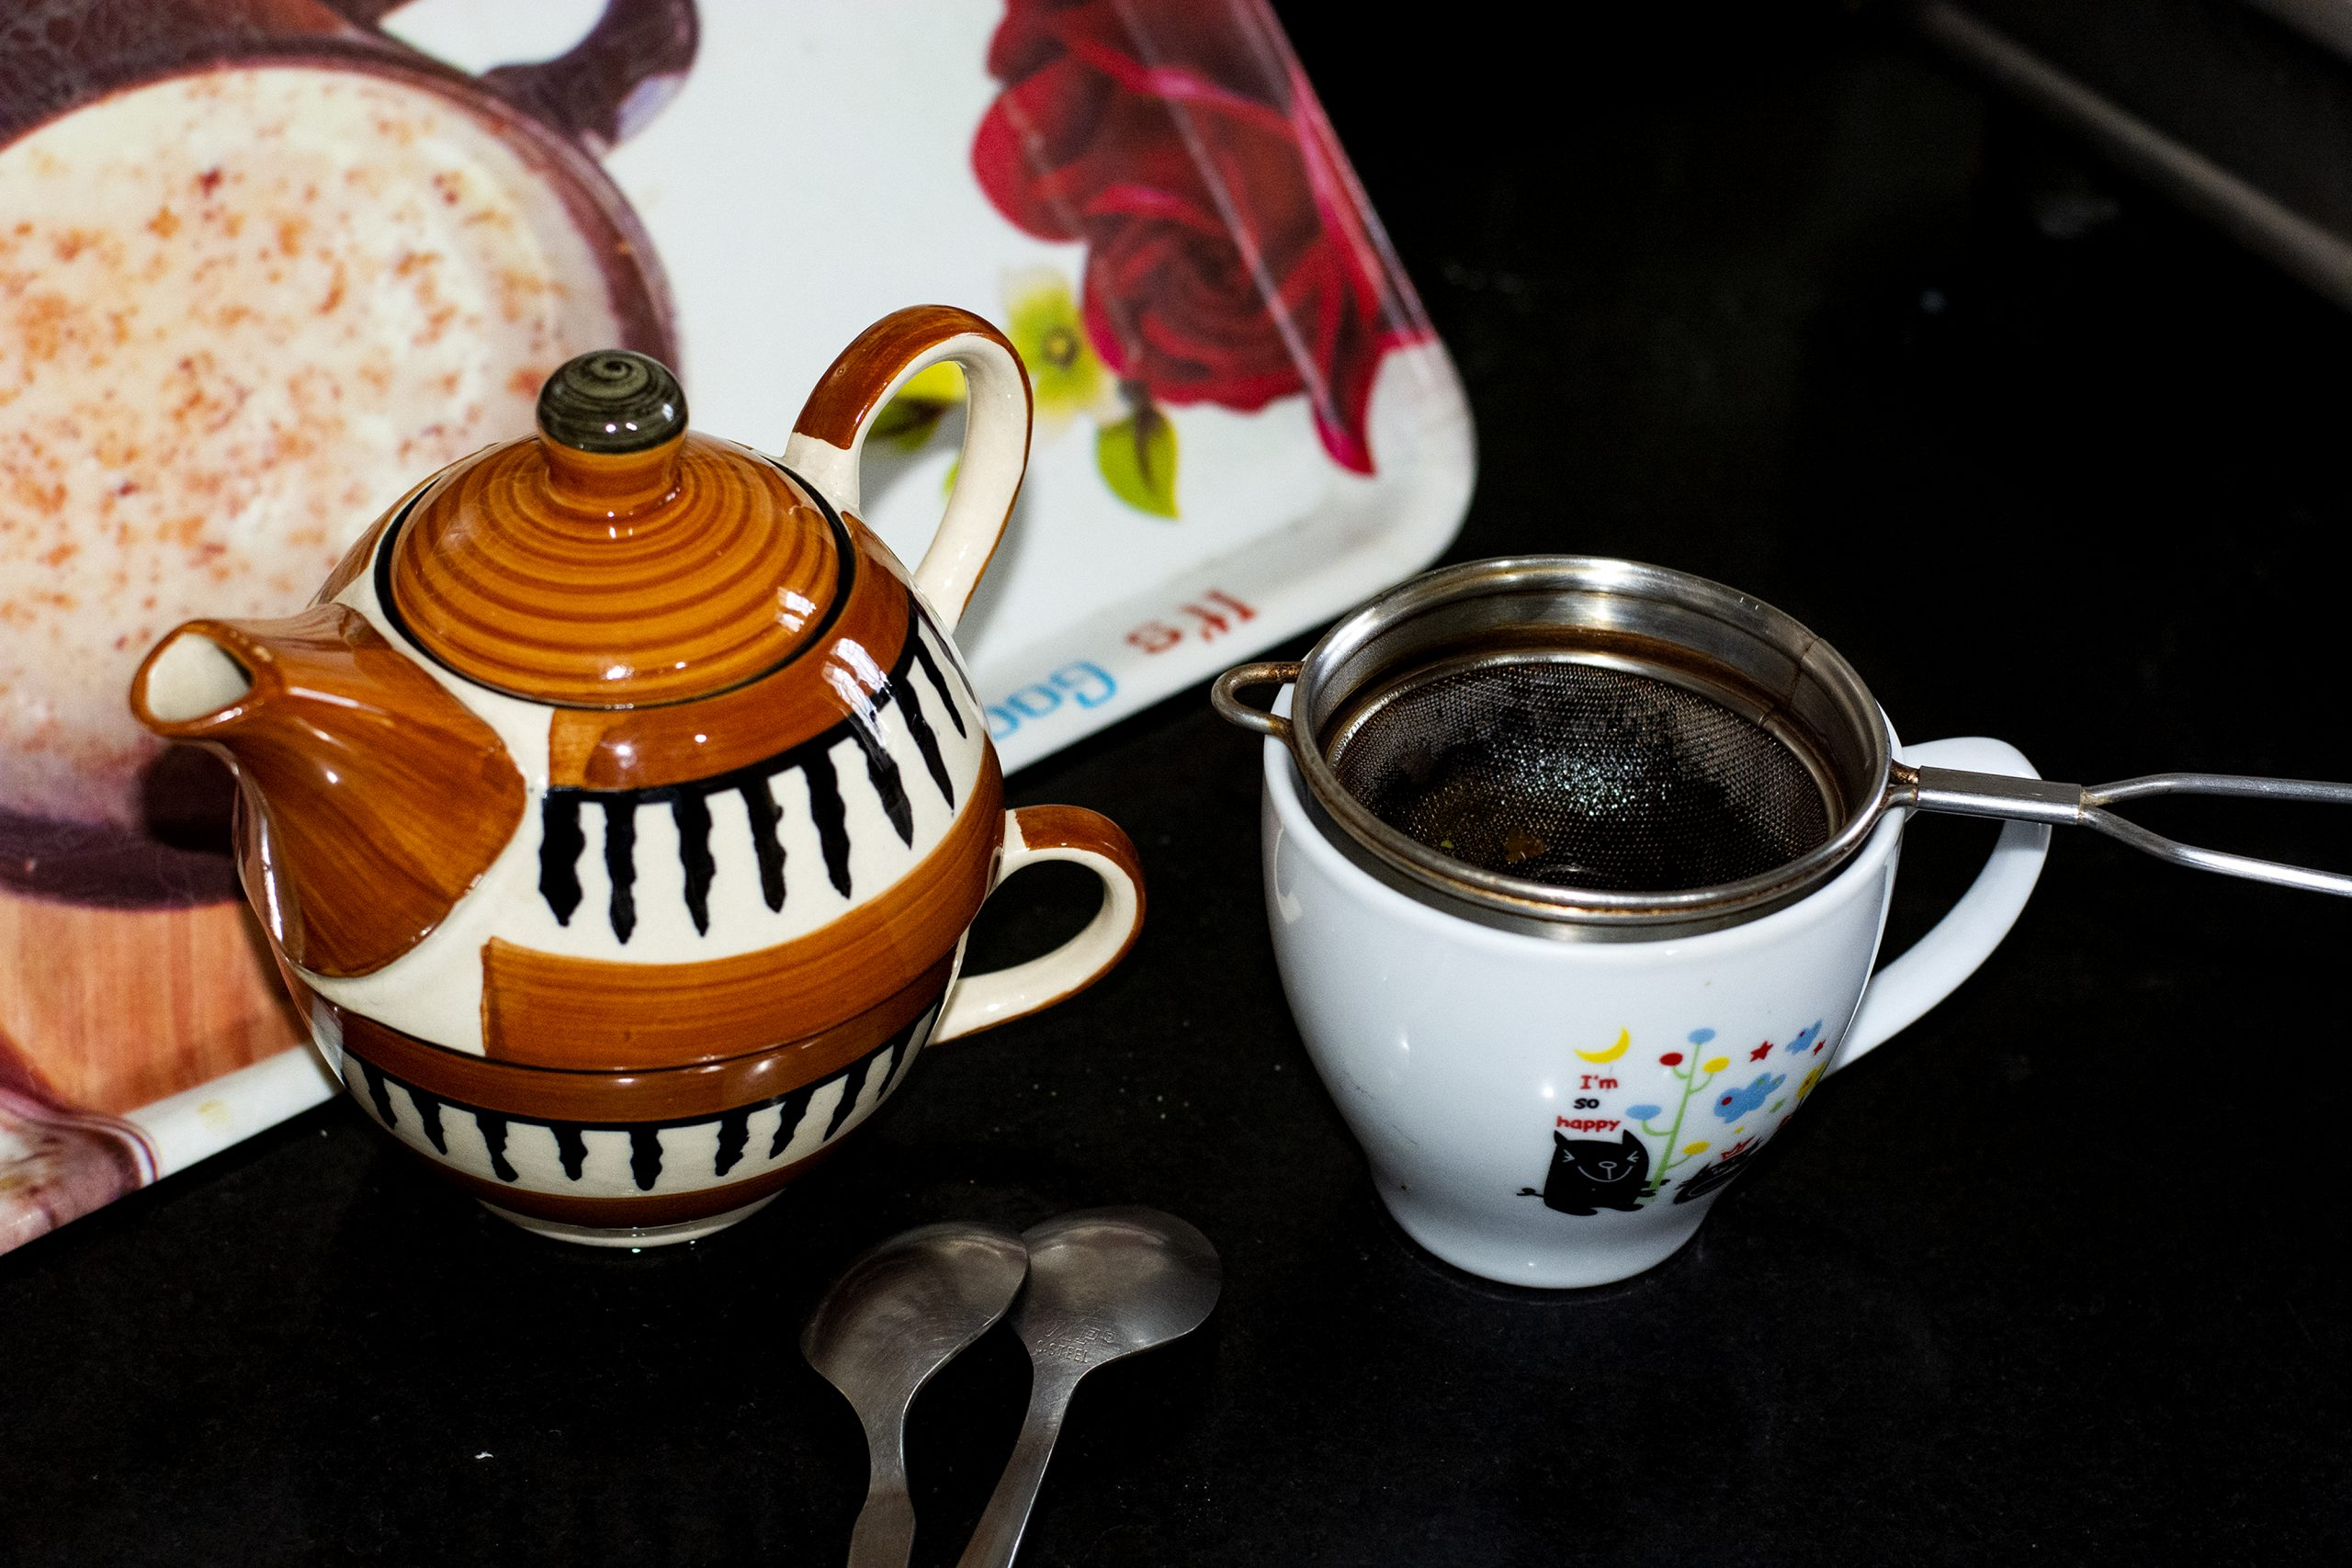 Teapot and cup with a strainer